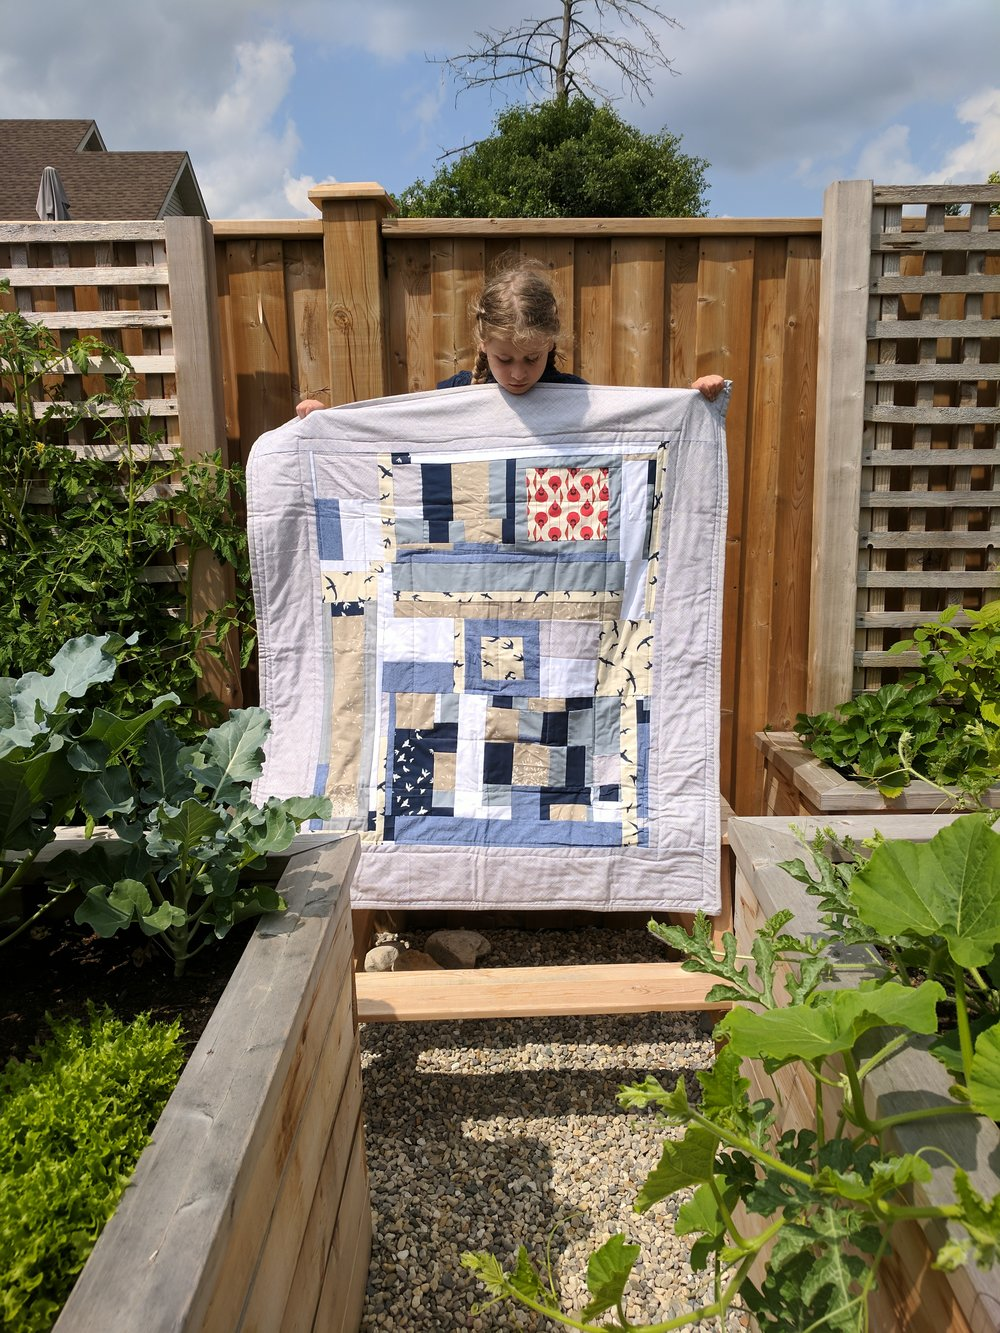 Zoe holds up a small quilt I just finished for our good friends' brand new baby boy.